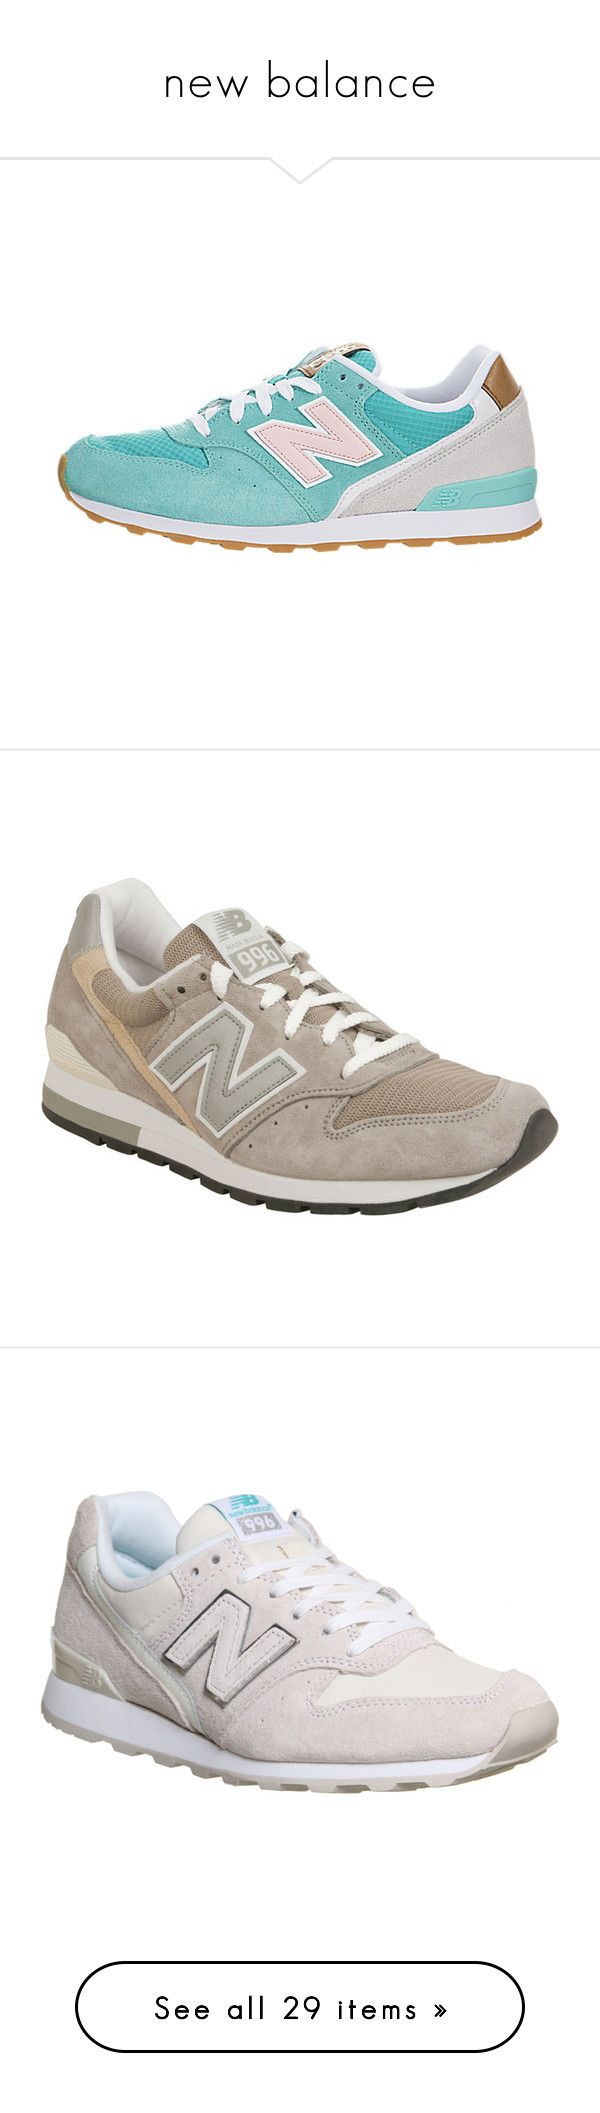 """new balance"" by chaek ❤ liked on Polyvore featuring shoes, suede leather shoes, new balance shoes, new balance, new balance footwear, suede shoes, men's fashion, men's shoes, men's sneakers and mens blue shoes"